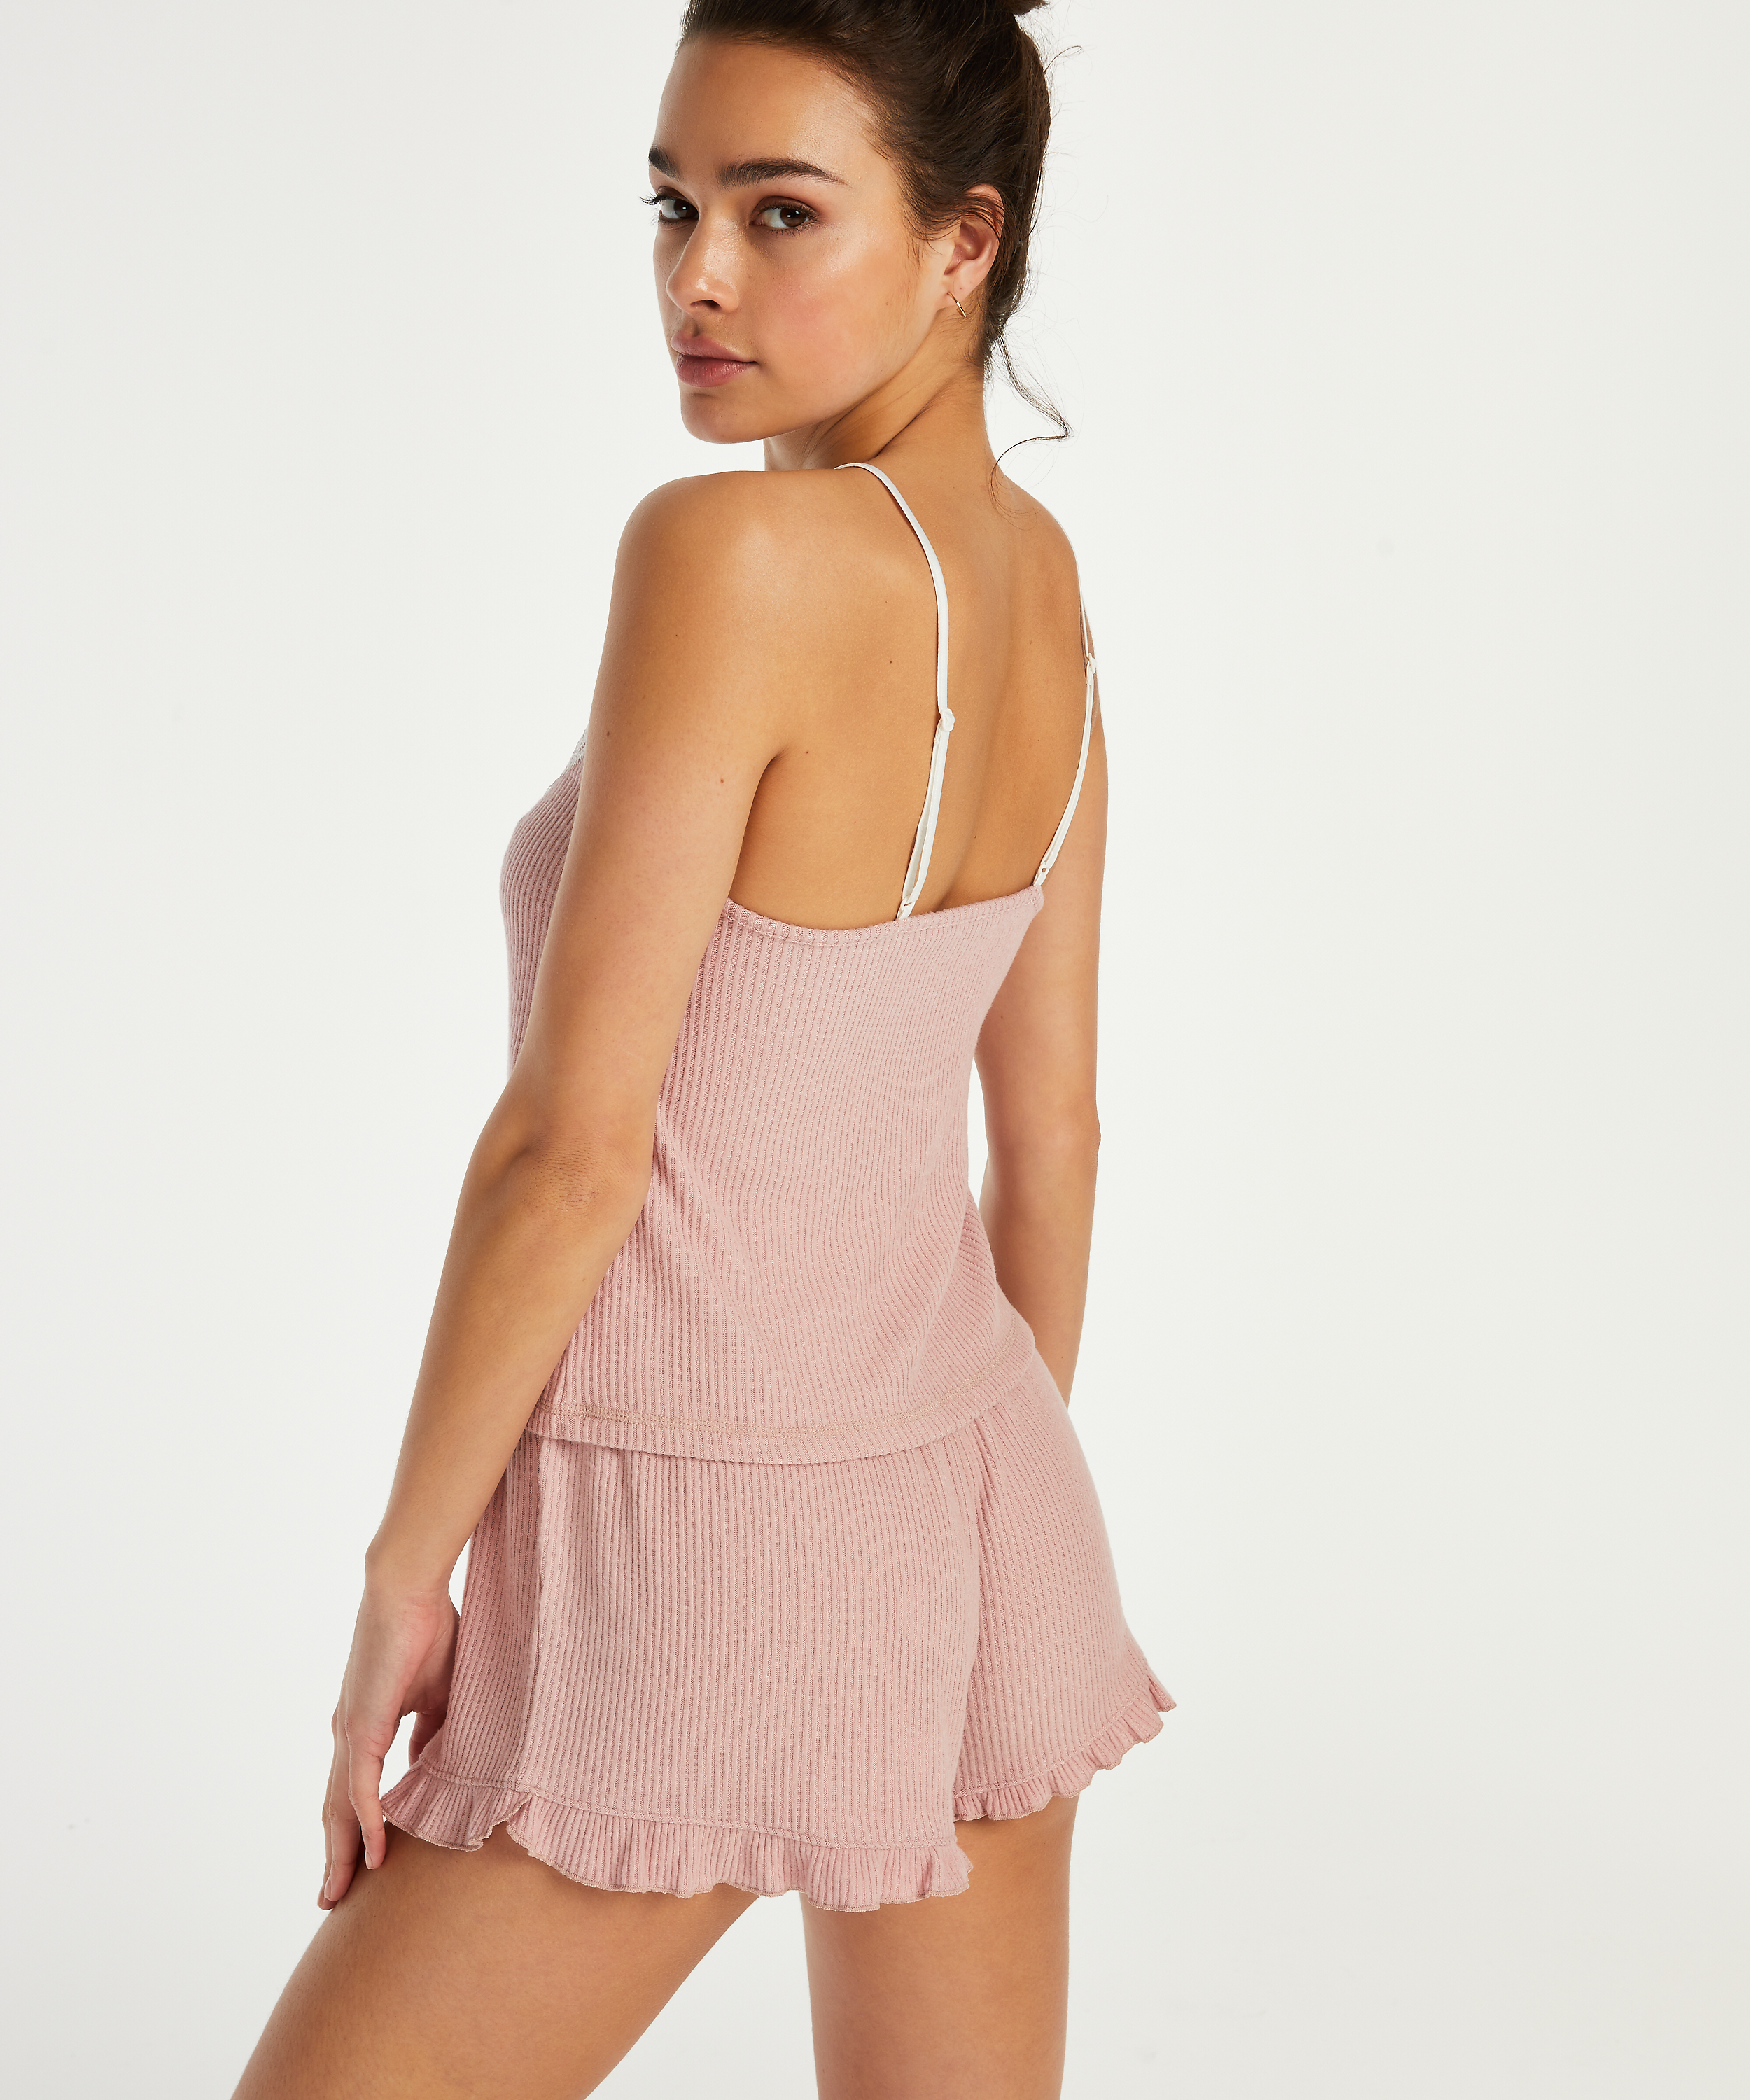 Cami top Brushed Rib Lace, Roze, main